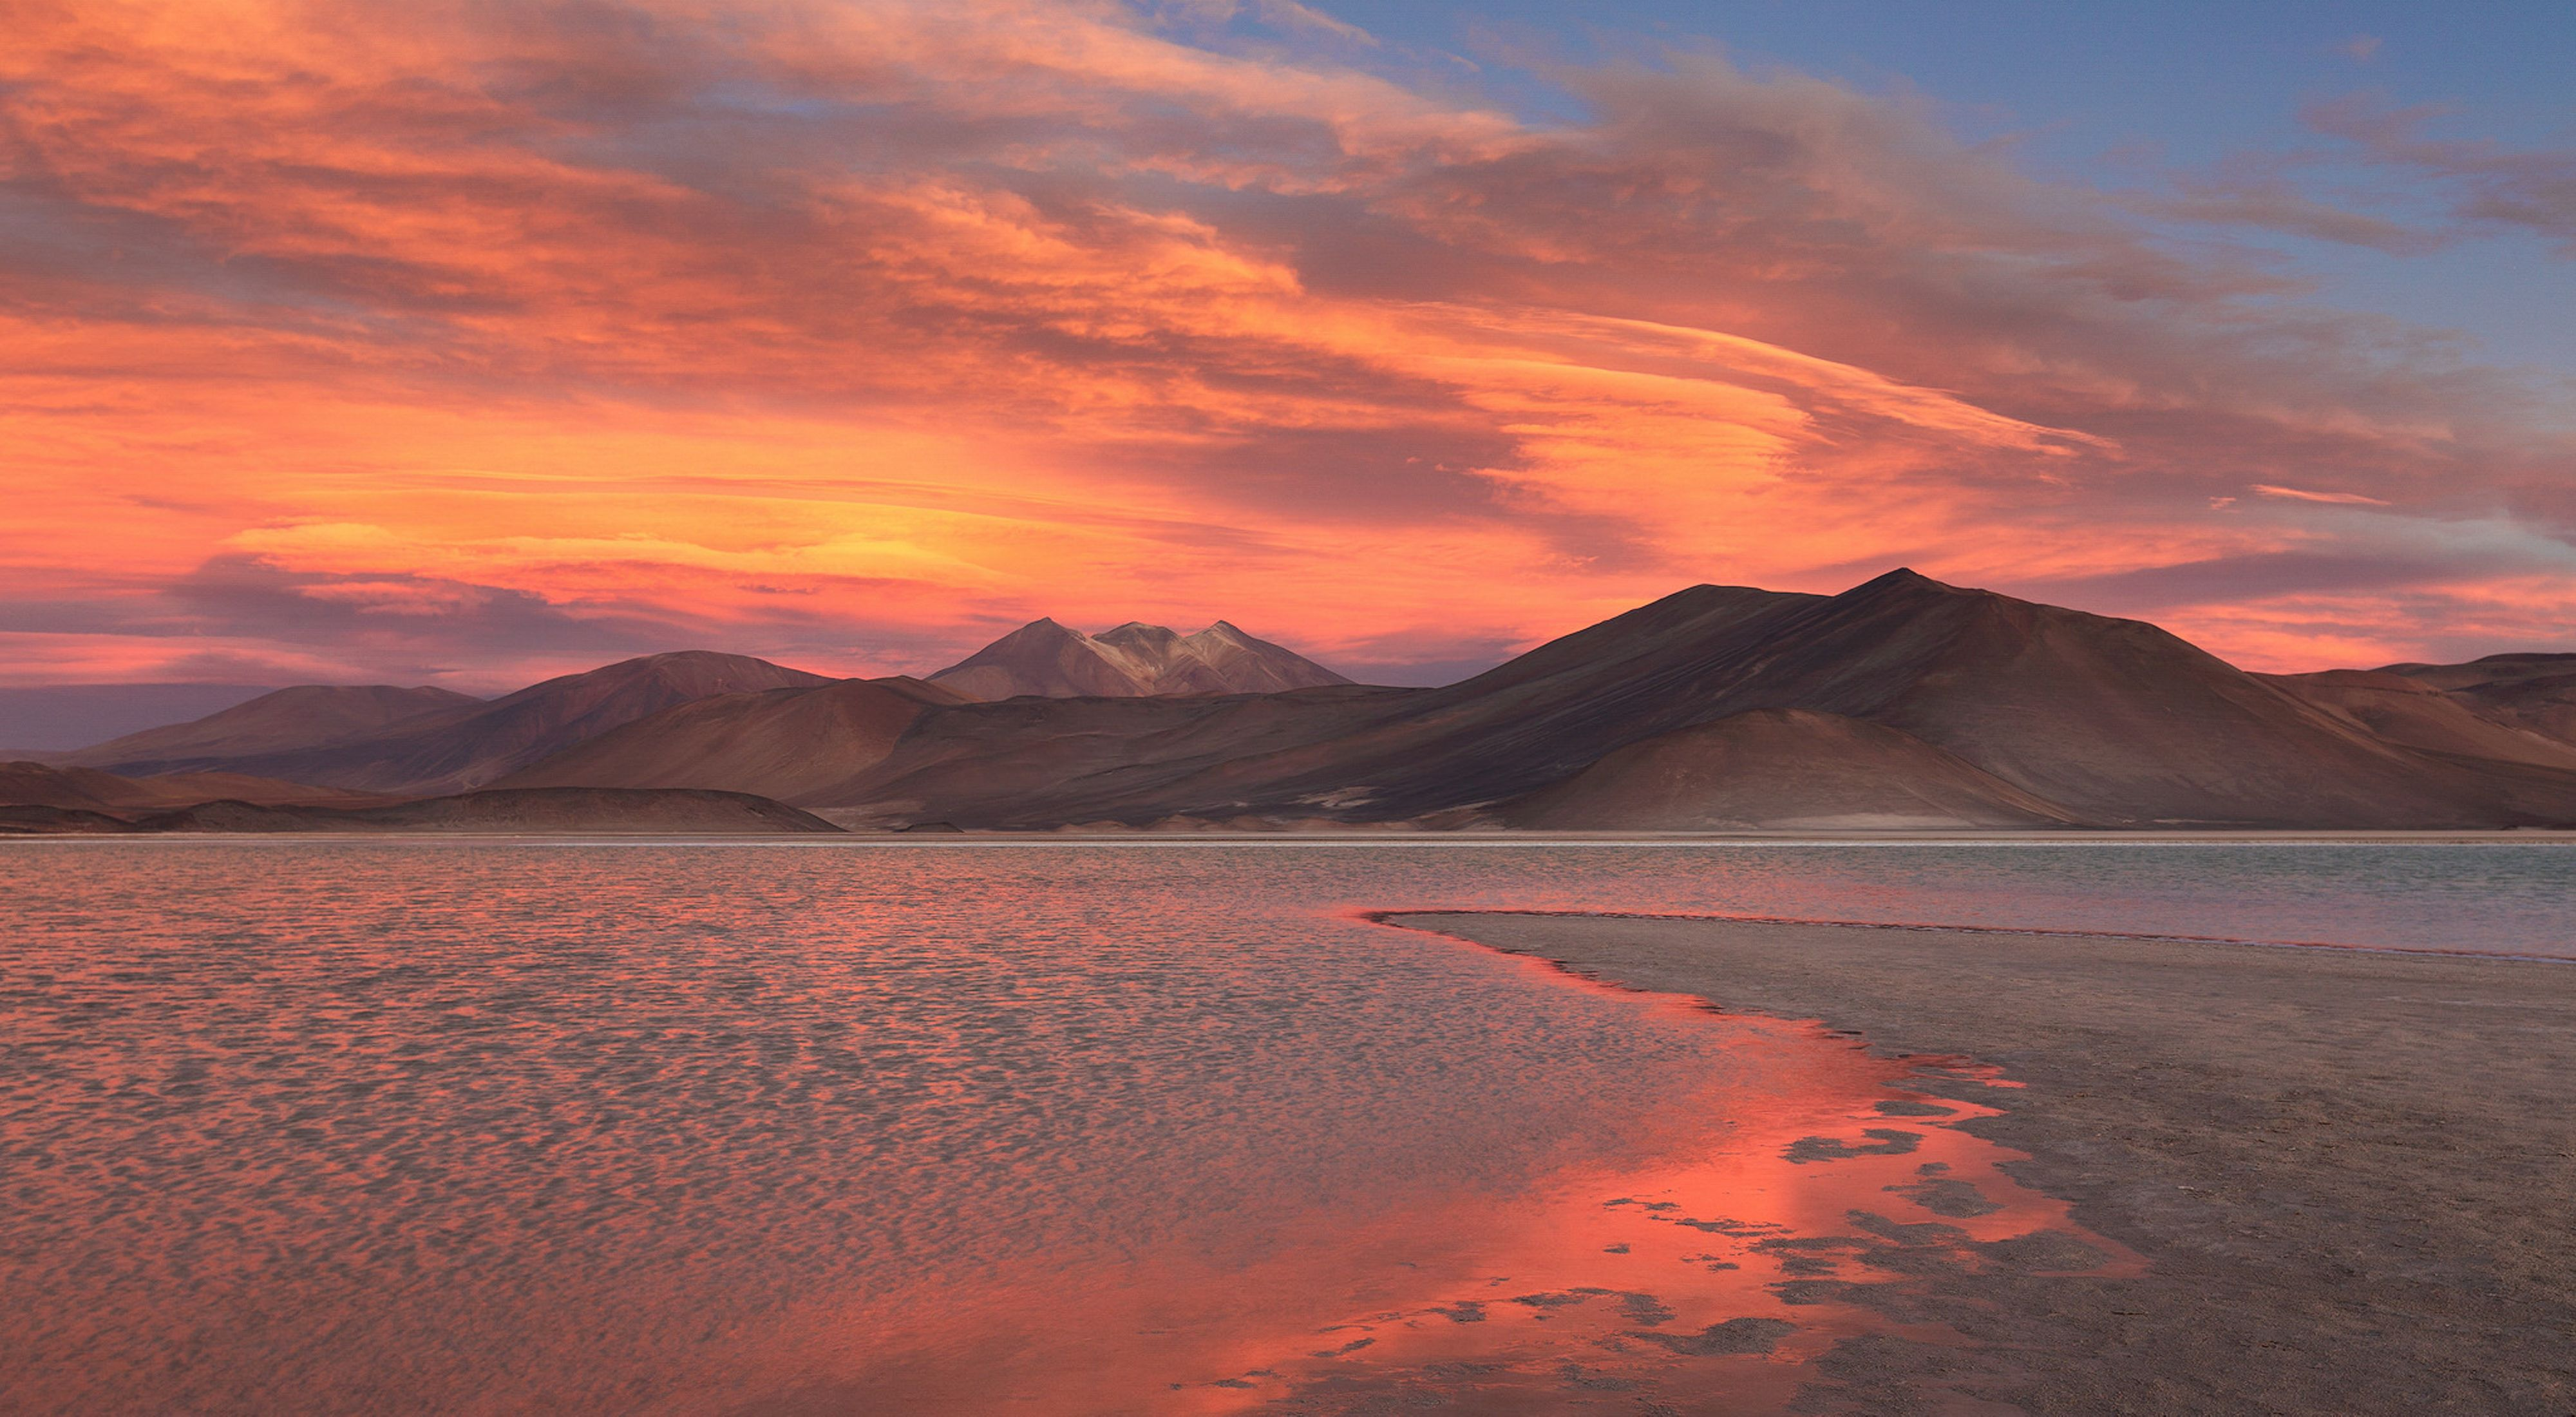 A sunset in Piedras Rojas in the Atacama Desert in Chile